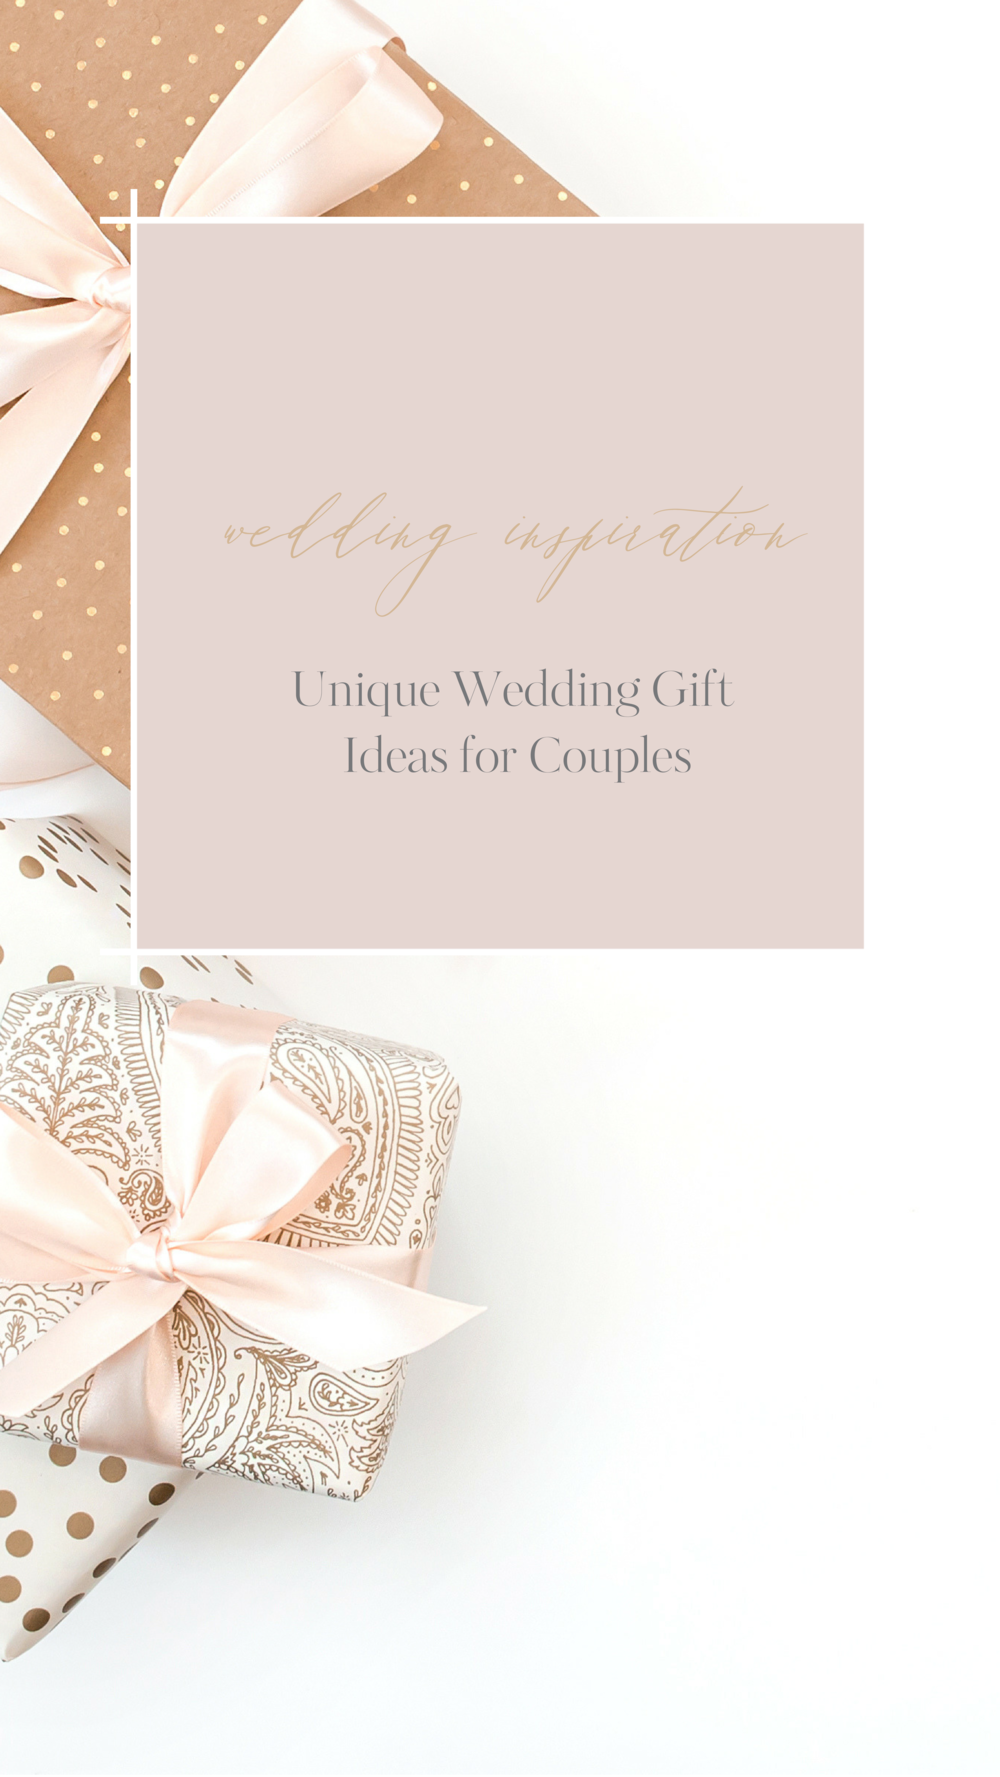 Unique Wedding Gift Ideas for Couples.png